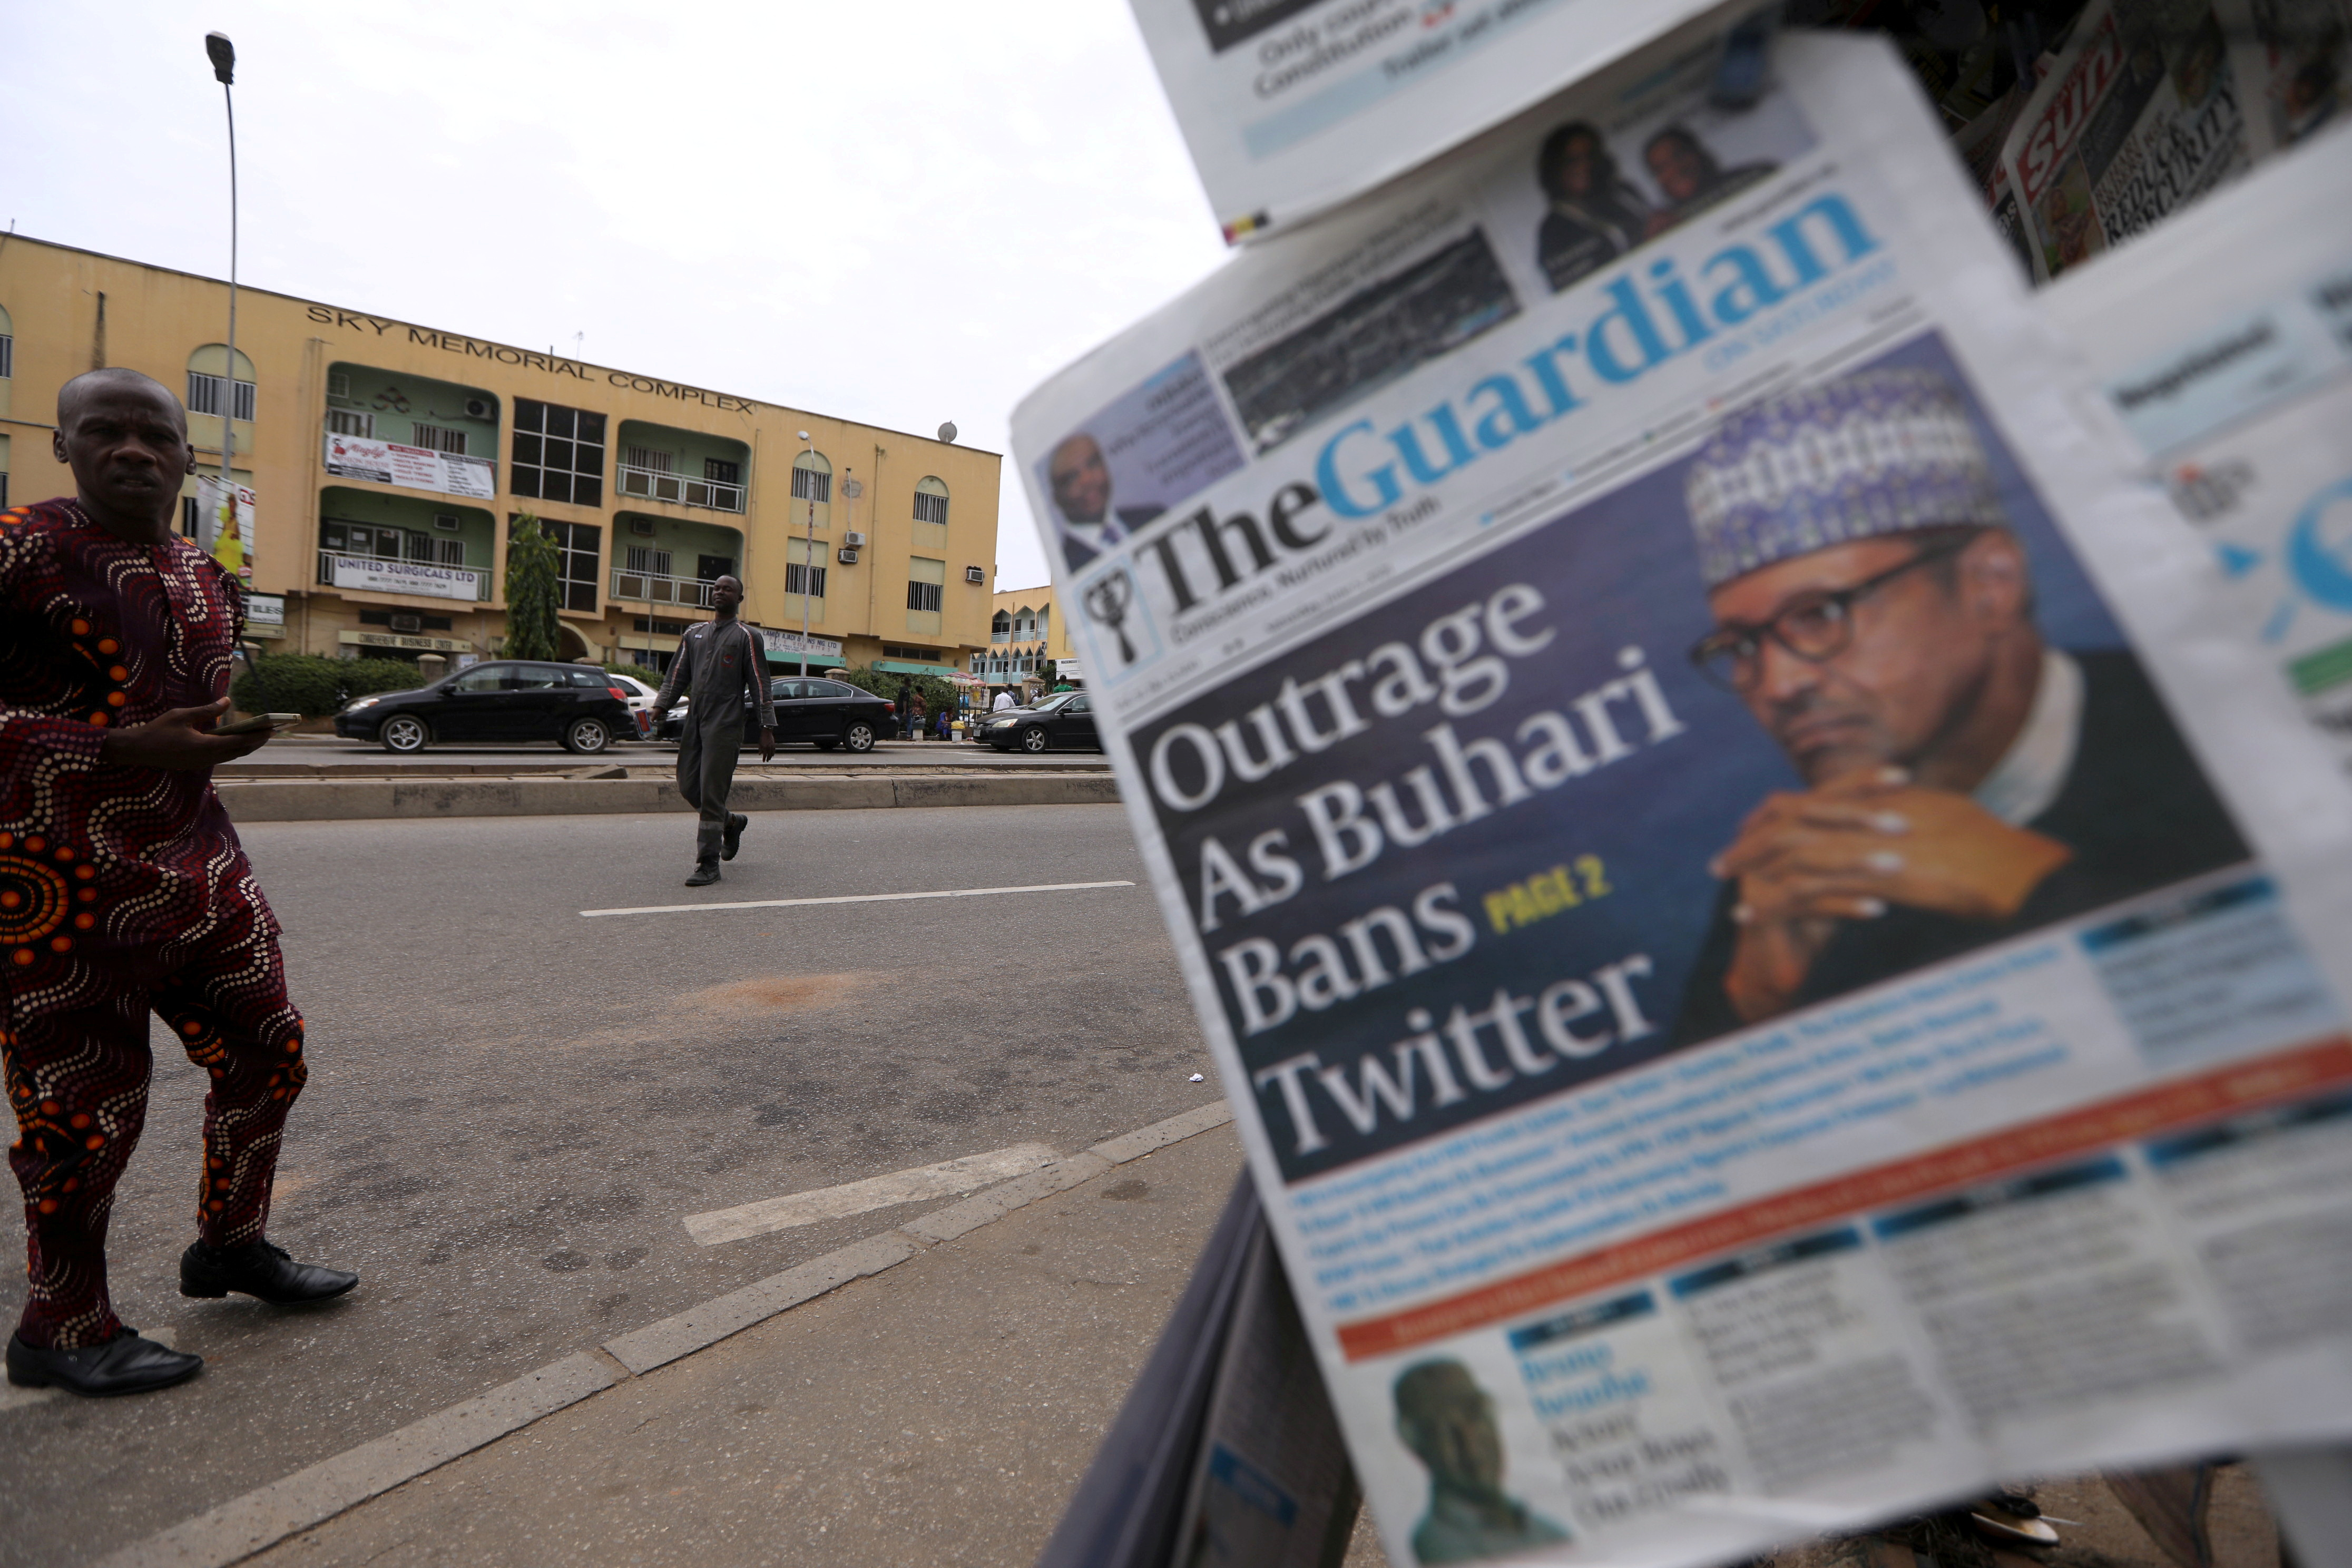 A man looks at newspapers at a newsstand in Abuja, Nigeria June 5, 2021. REUTERS/Afolabi Sotunde